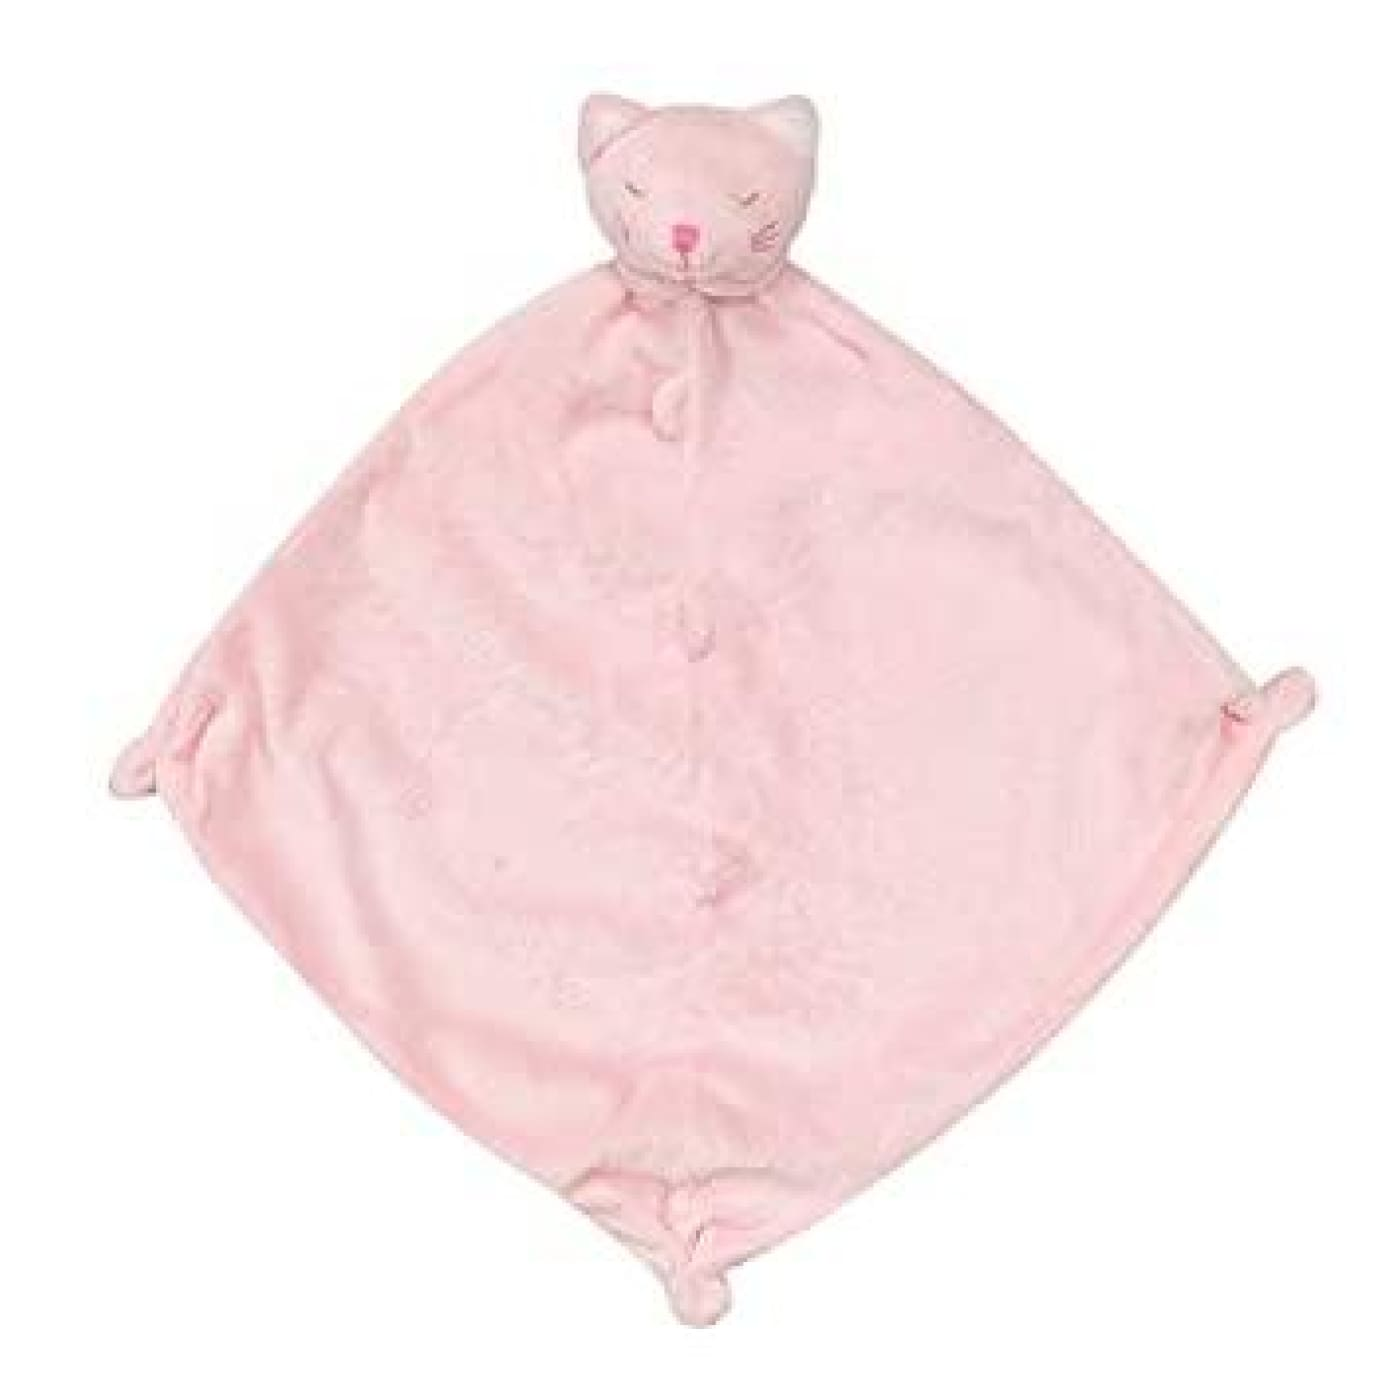 Angel Dear Blankie - Pink Kitty - Pink Kitty - TOYS & PLAY - BLANKIES/COMFORTERS/RATTLES